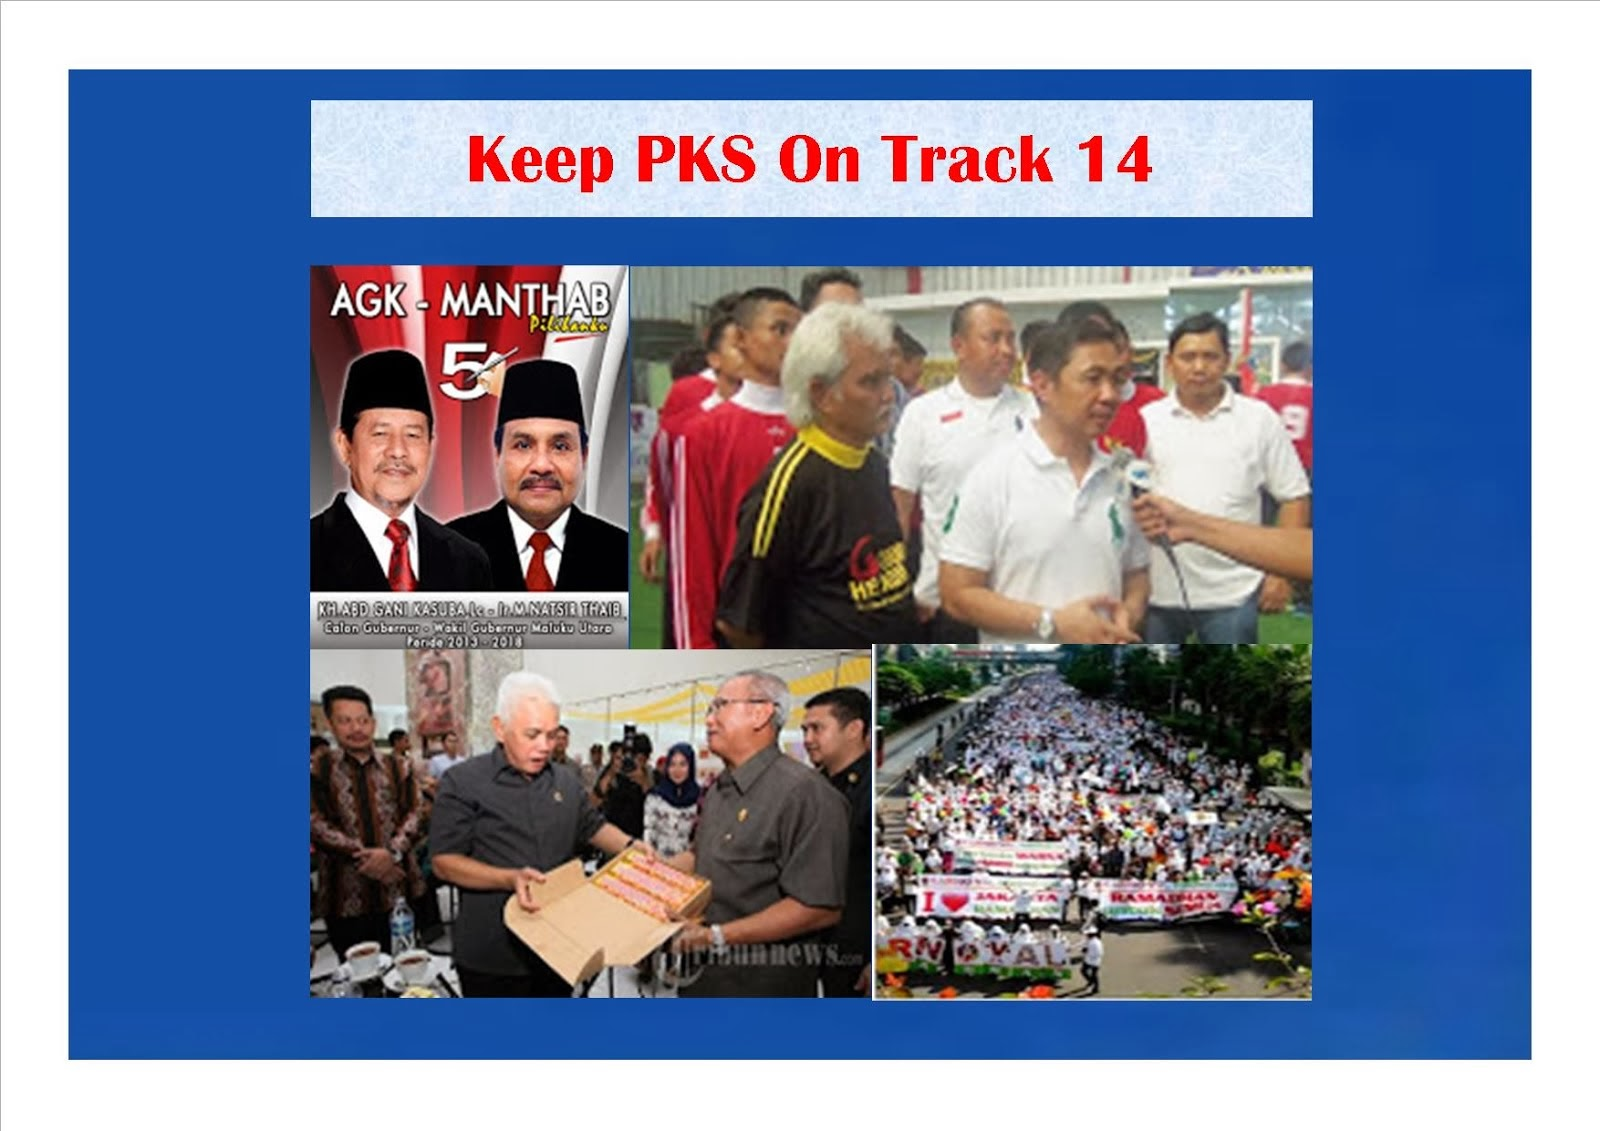 Keep PKS On Track 14